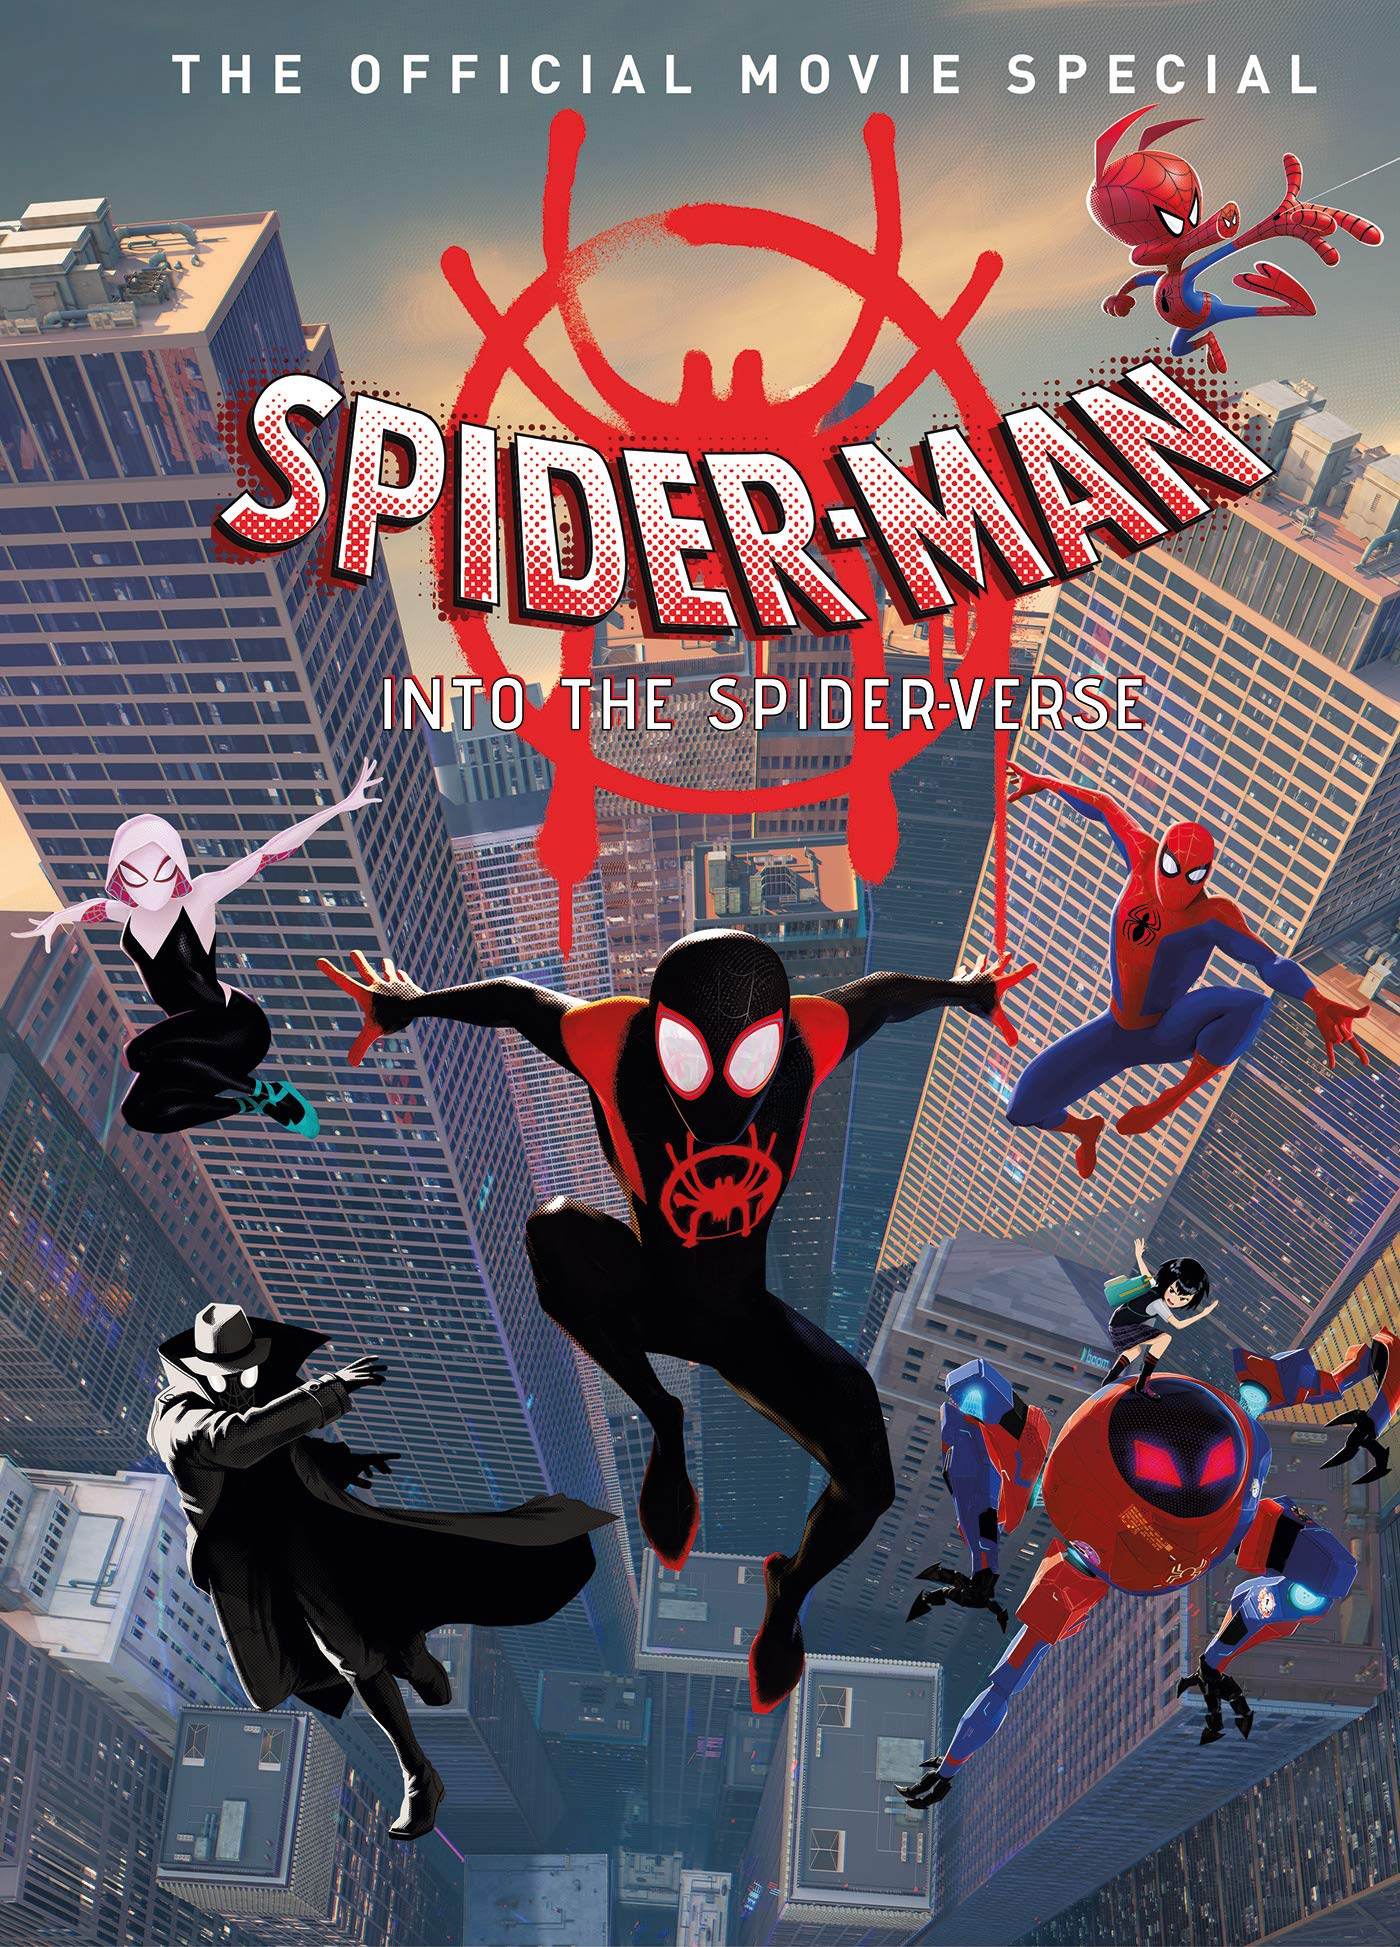 A collector's guide to the new animated movie Spider-Man: Into the Spider-Verse, featuring exclusive content showcasing behind-the-scenes images, art, and much more!